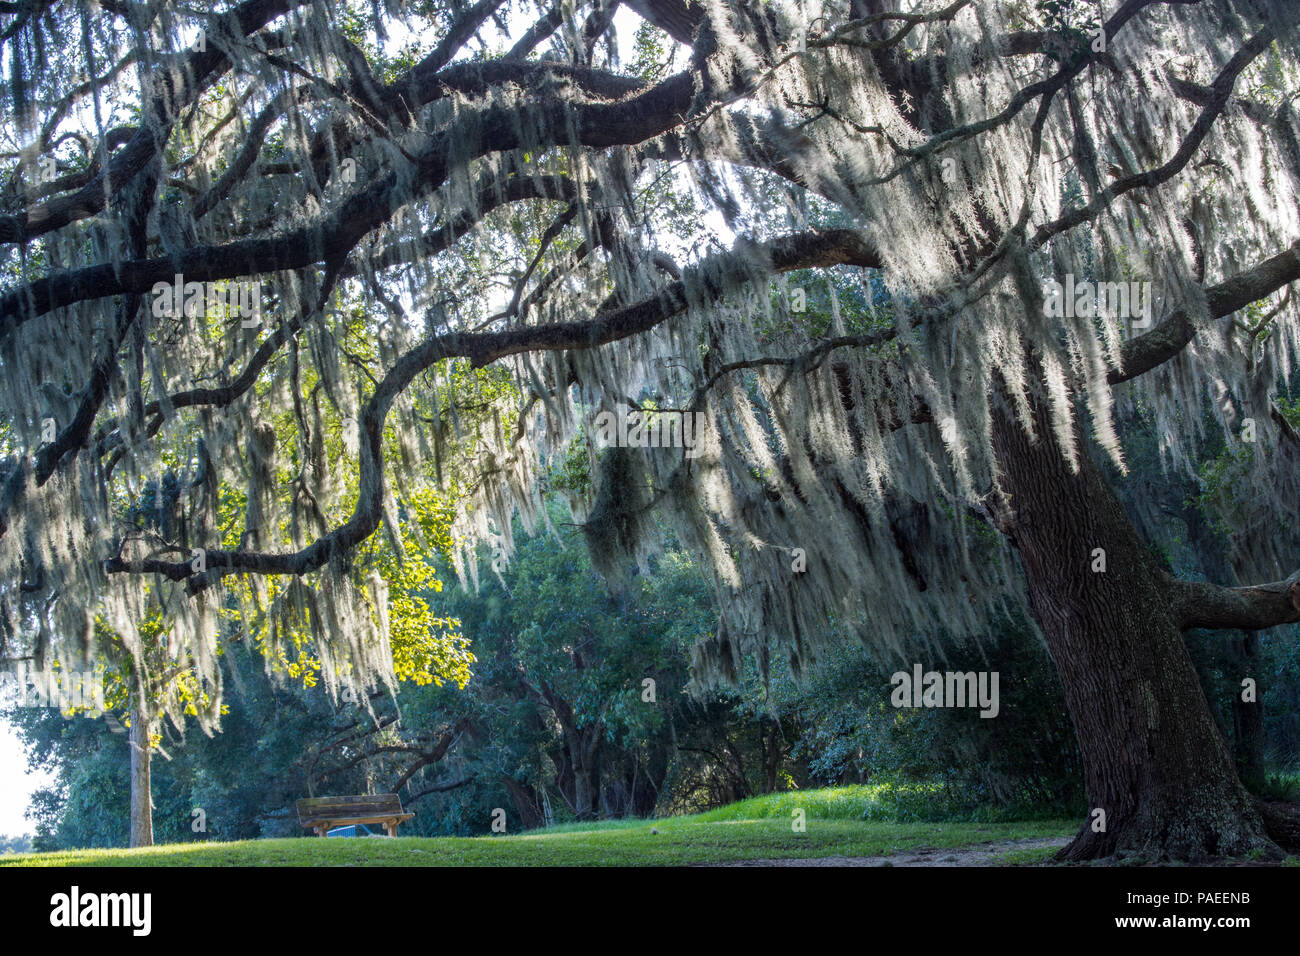 Almost unearthly in it's beauty; Spanish moss on a live oak, Brazos Bend State Park, Tx - Stock Image